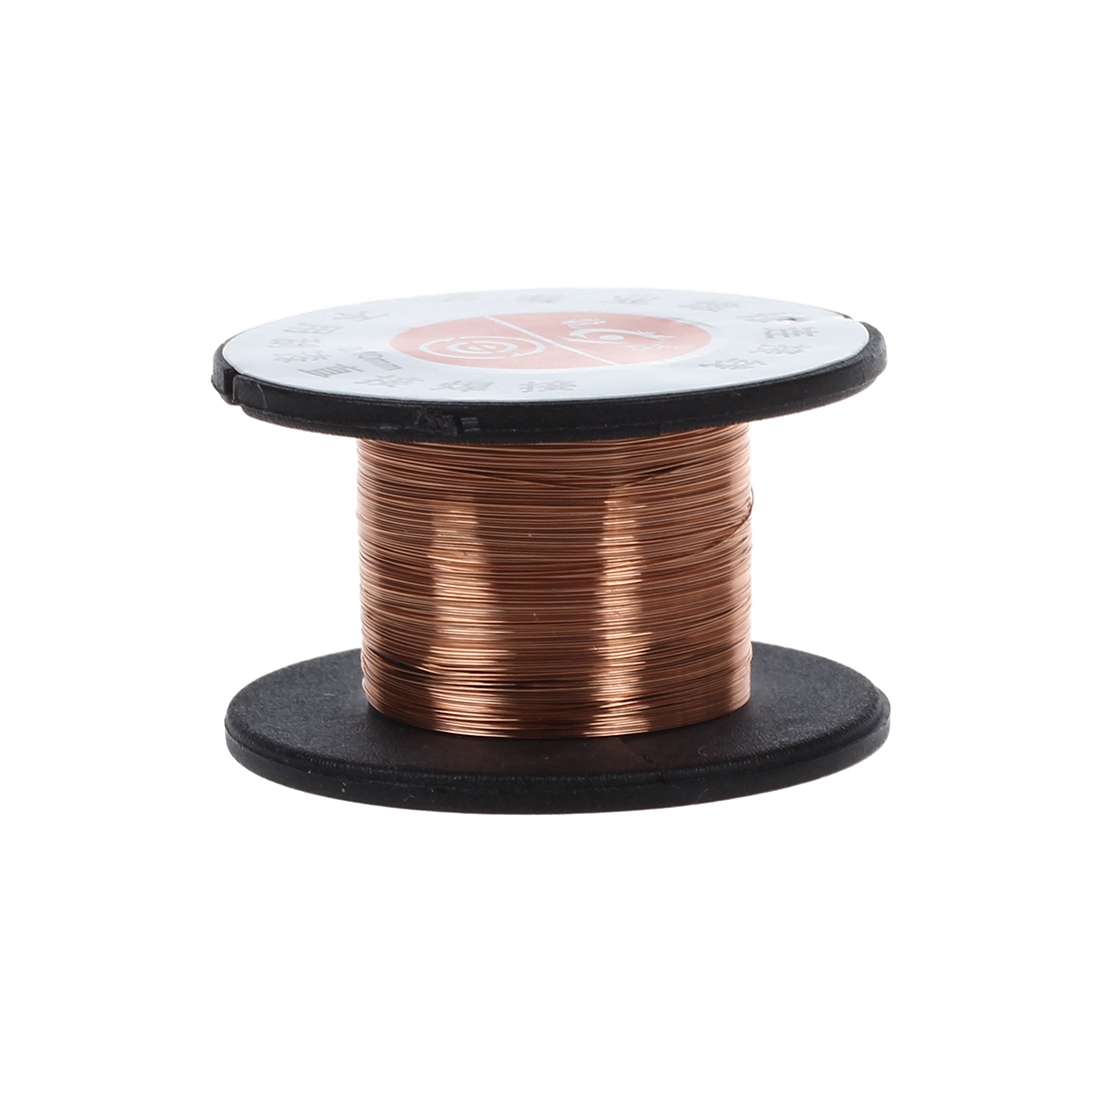 1Pcs 15m 0.1MM Copper Soldering Solder Enamelled Reel Wire Roll Connecting Drop Shipping